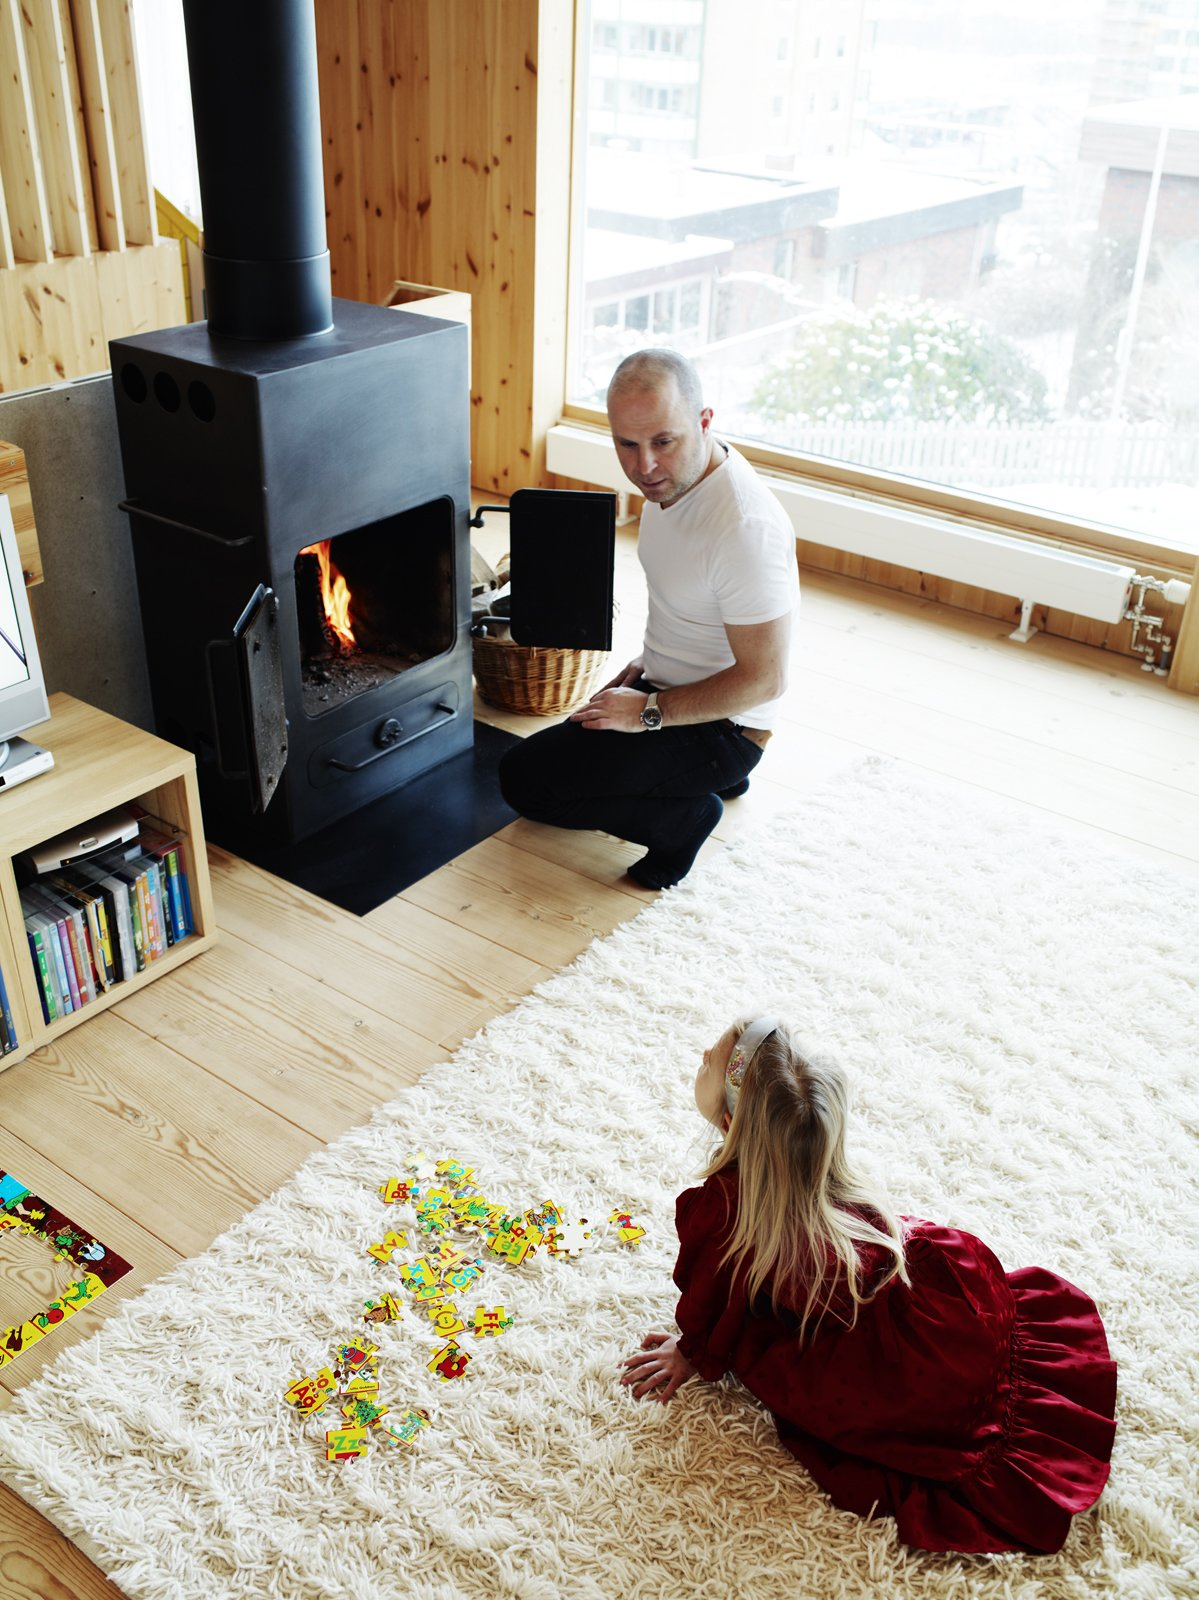 Architect Per Bornstein and his daughter Velma relax in the living room. The woodburning stove was a second-hand store find. Photo by Pia Ulin. Tagged: Living Room, Wood Burning Fireplace, Standard Layout Fireplace, Light Hardwood Floor, Rug Floor, and Storage.  97+ Modern Fireplace Ideas by Dwell from Knotty by Nature